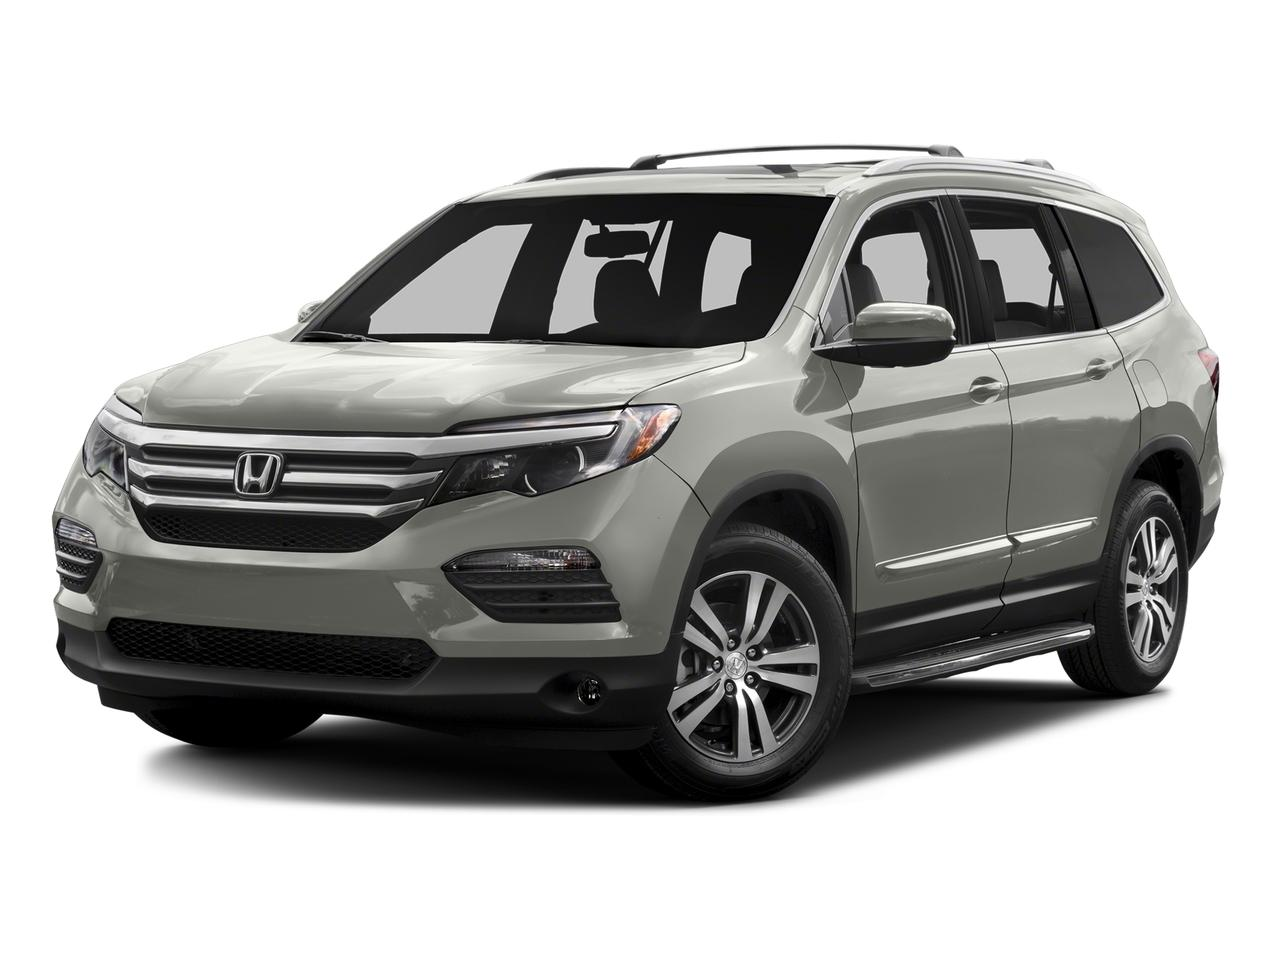 2016 Honda Pilot Vehicle Photo in Broussard, LA 70518